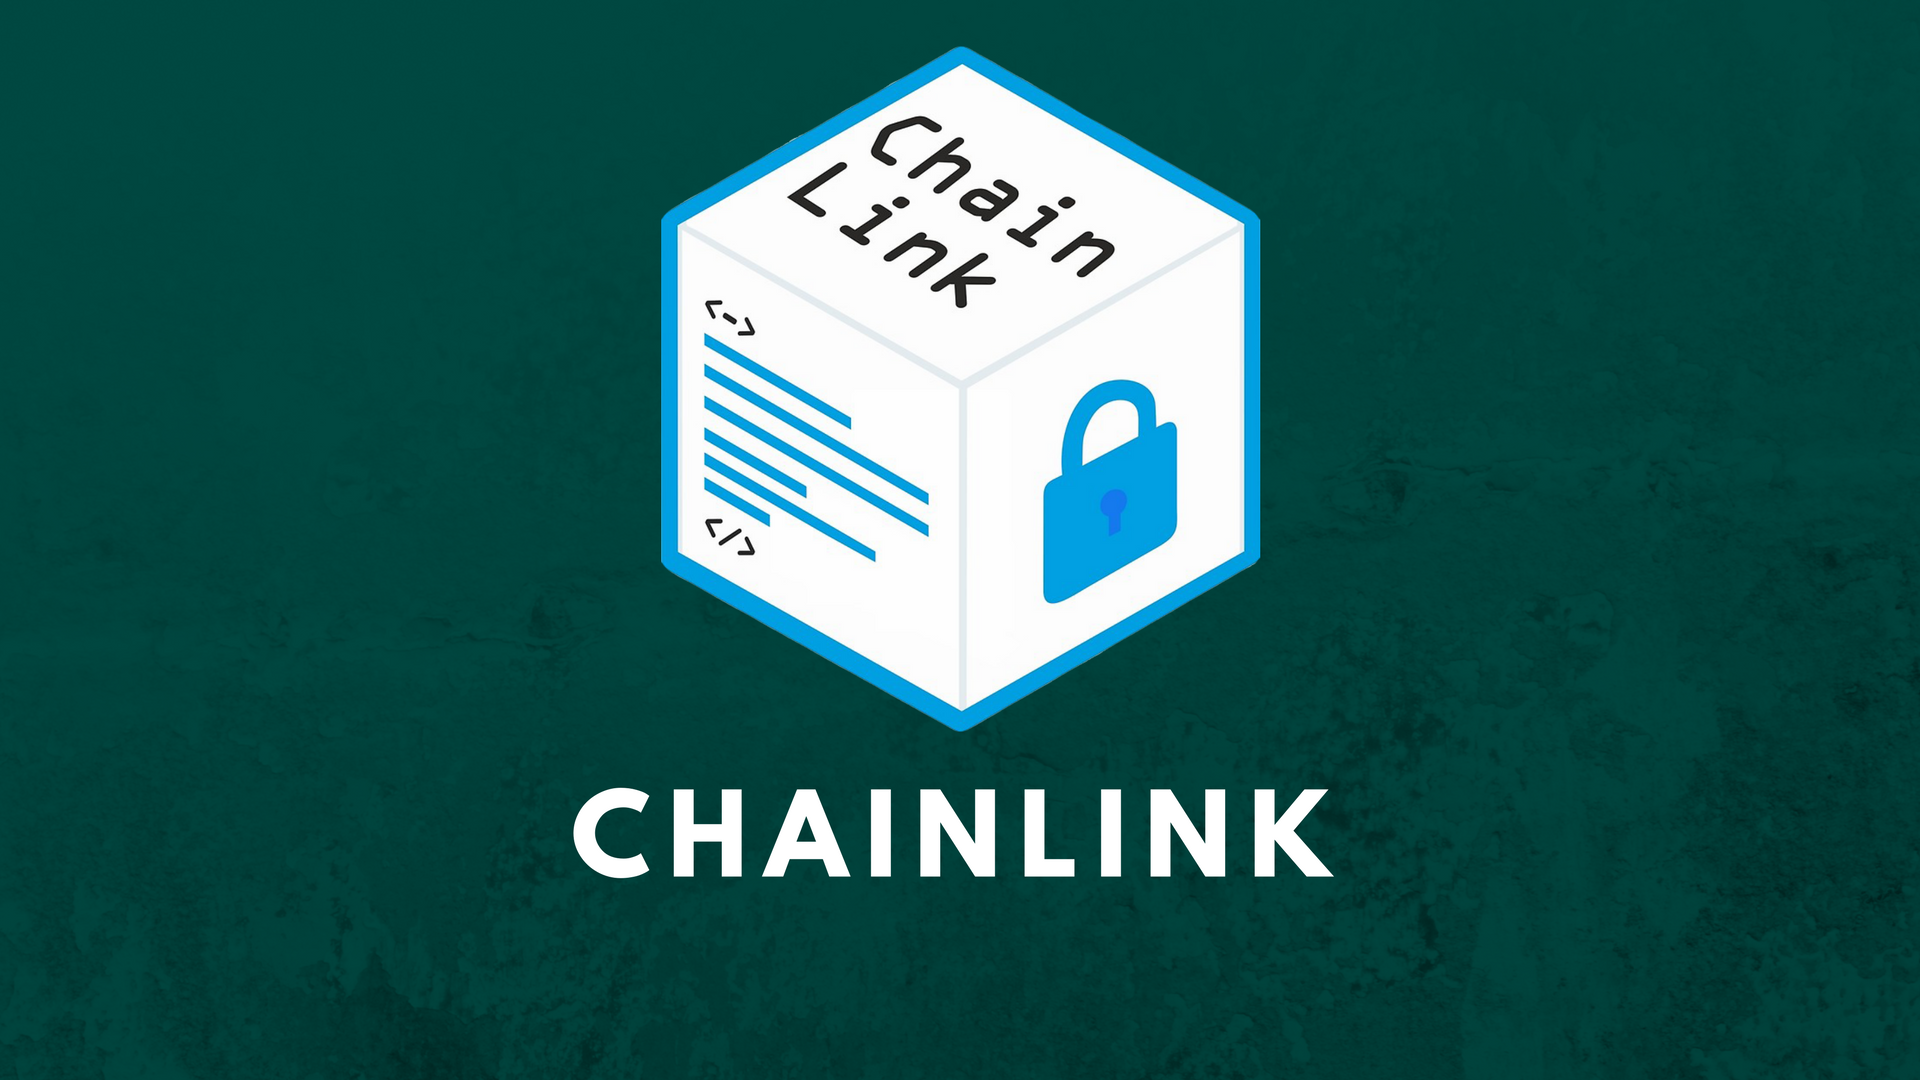 What is chainlink cryptocurrency